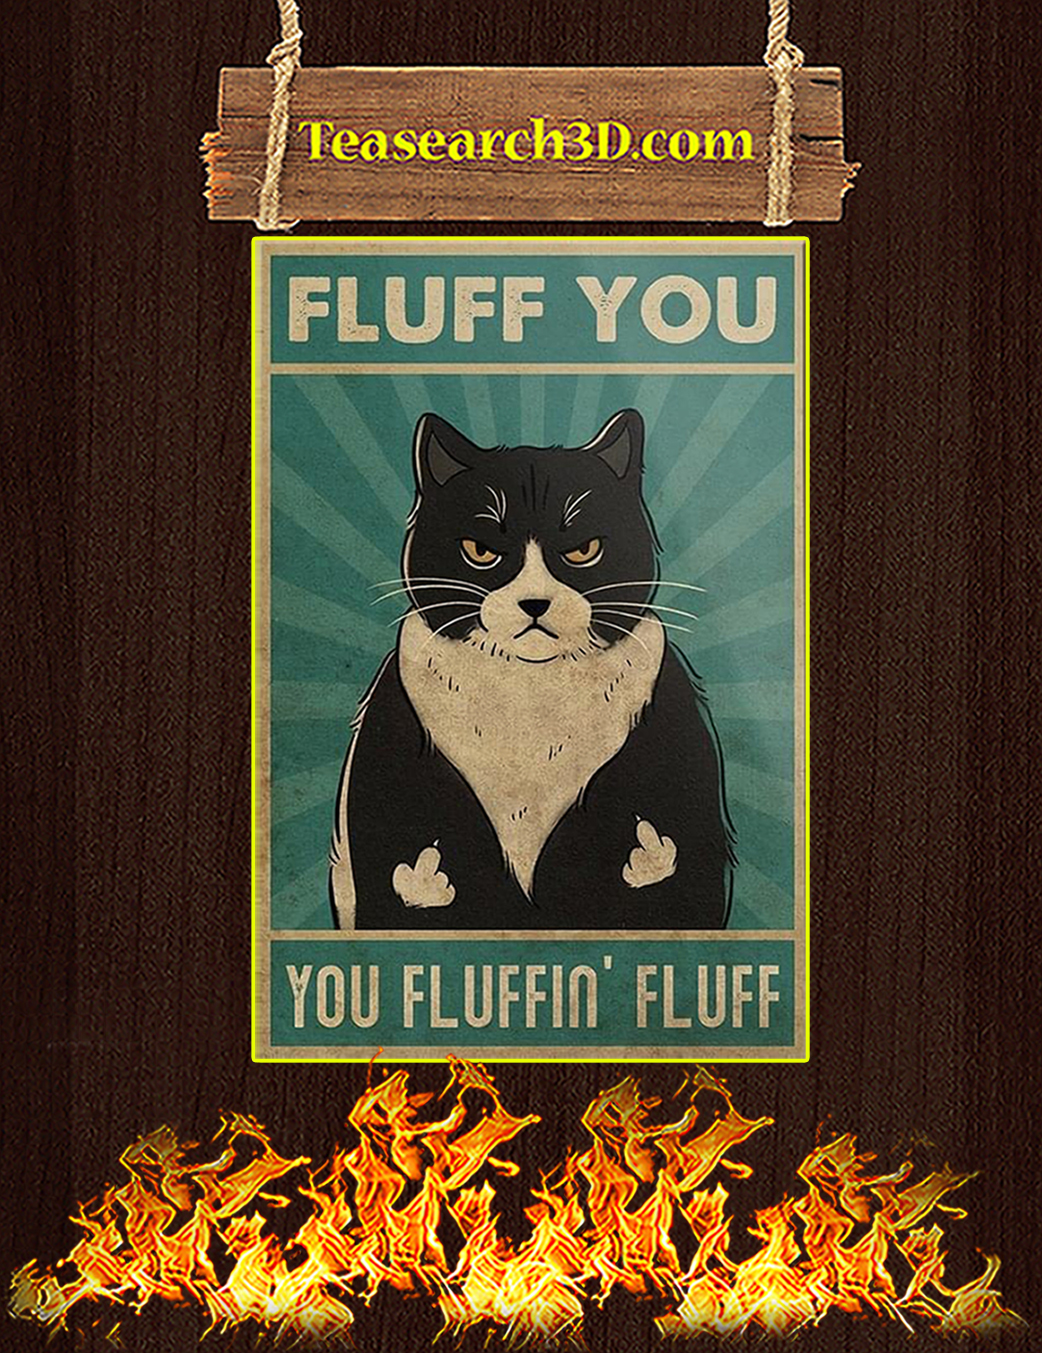 Cat fluff you poster A1